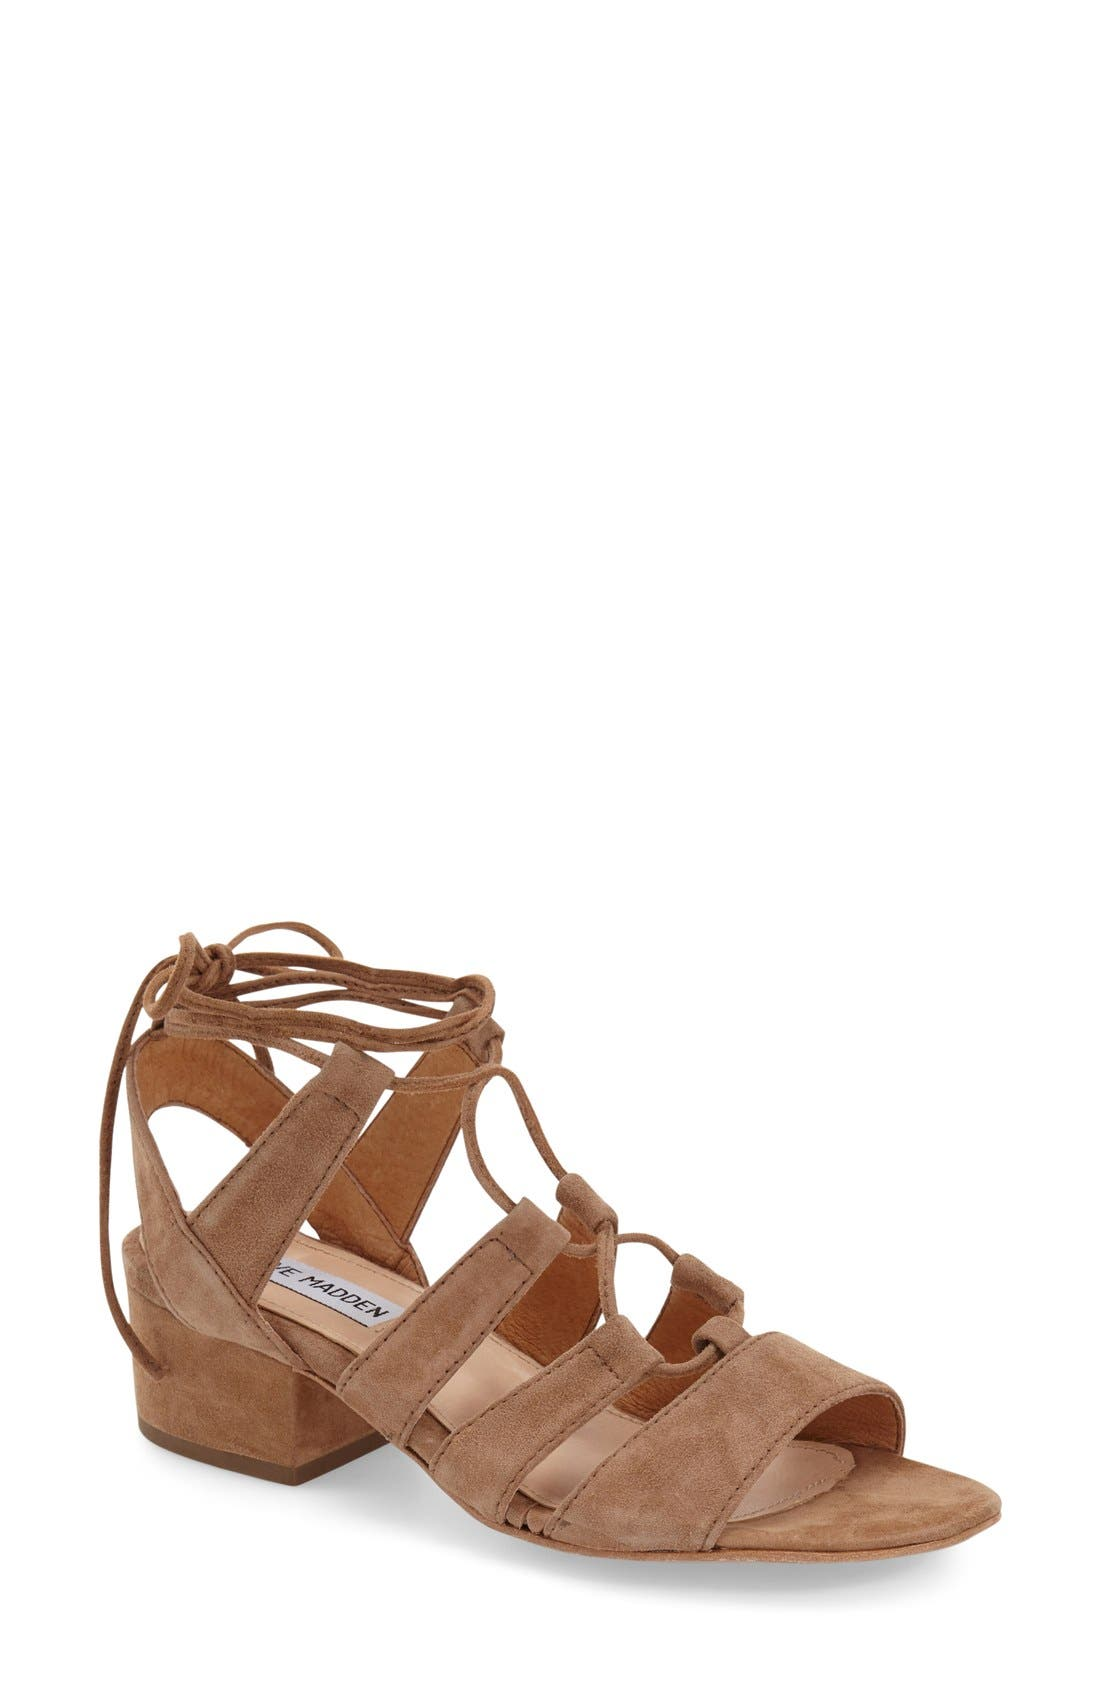 Alternate Image 1 Selected - Steve Madden 'Kitty' Ghillie Sandal (Women)